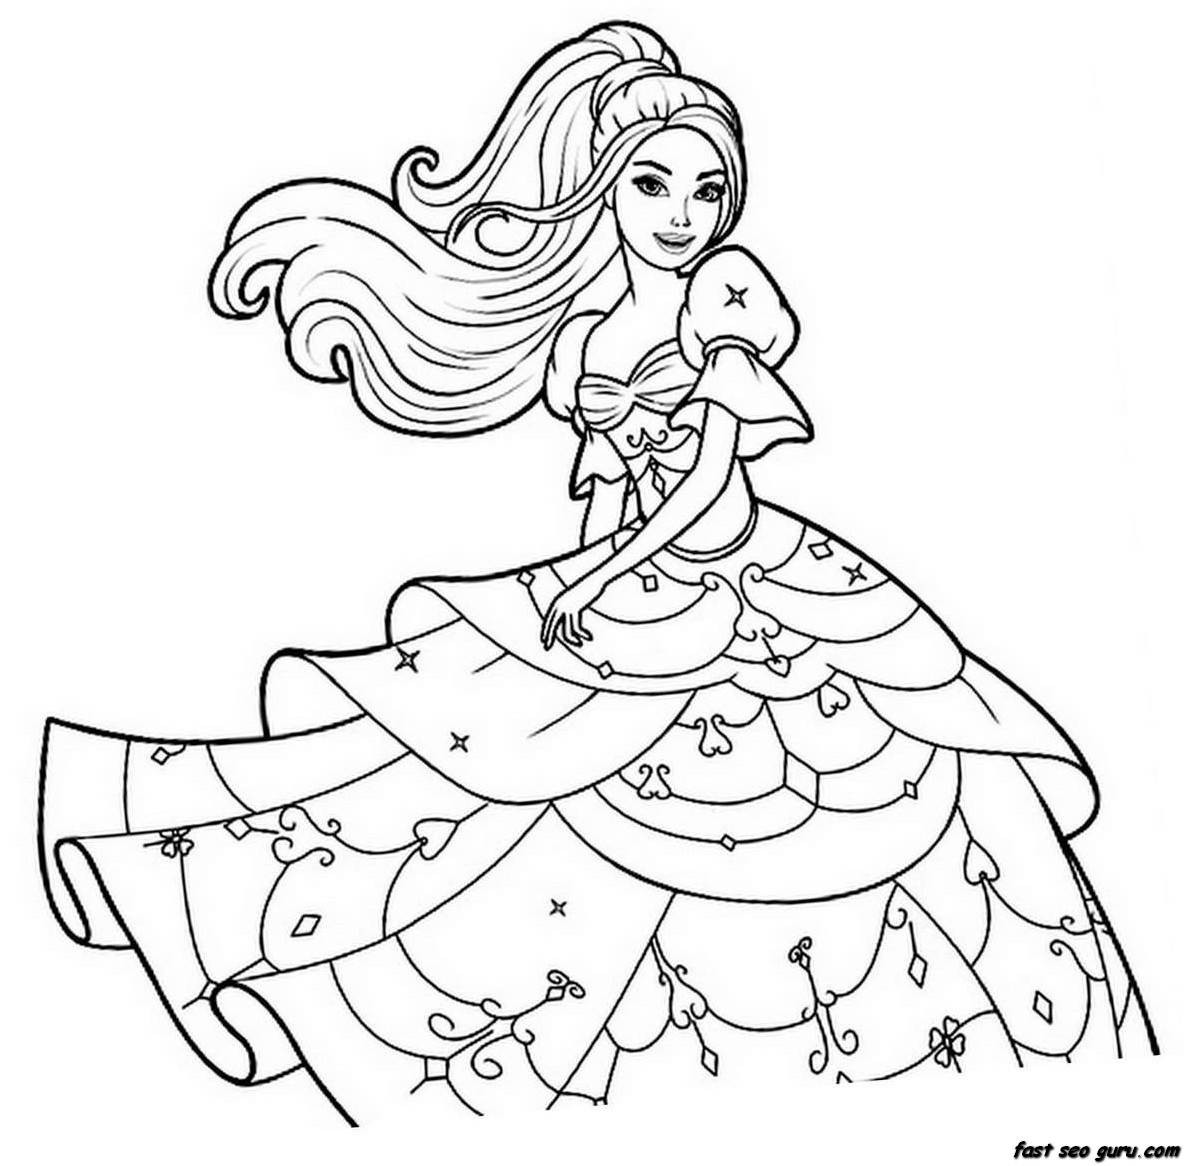 Best ideas about Printable Coloring Sheets For Girls . Save or Pin coloring pages for girls Now.